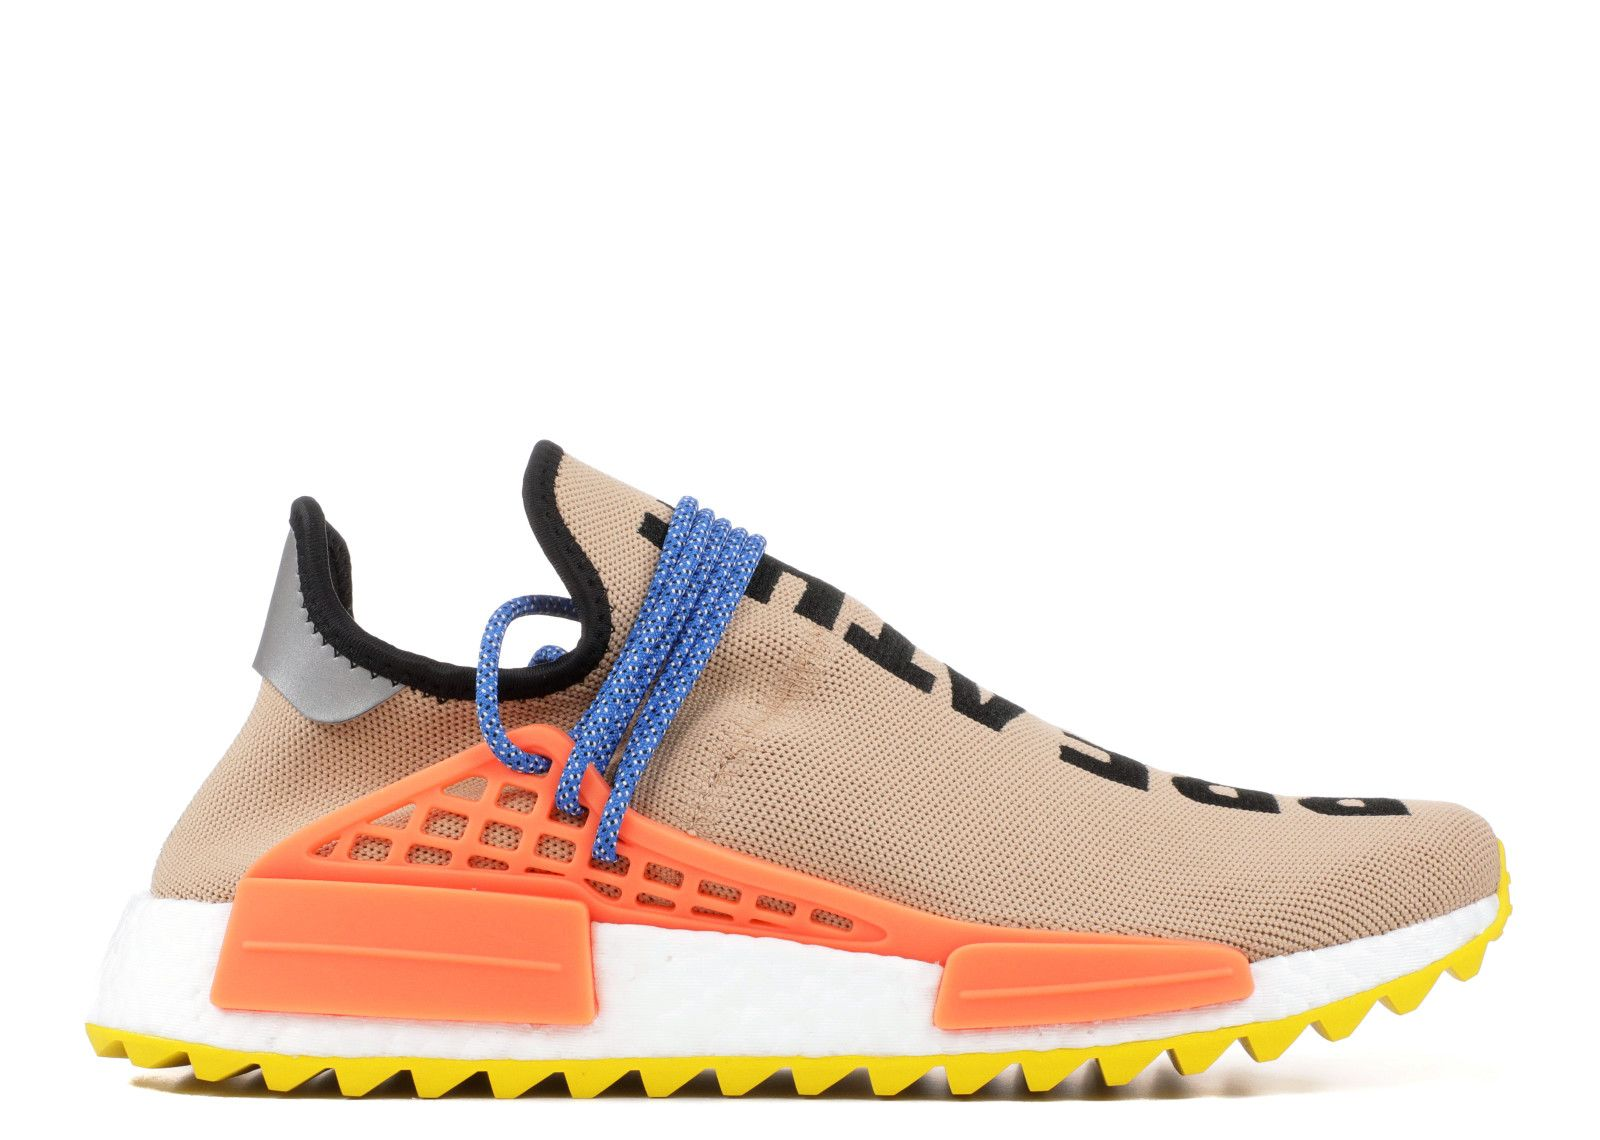 fcbca73070c12 2017-2018 New Arrival adidas PW Human Race Nmd TR Pharrell Pale Nude Black  Yellow